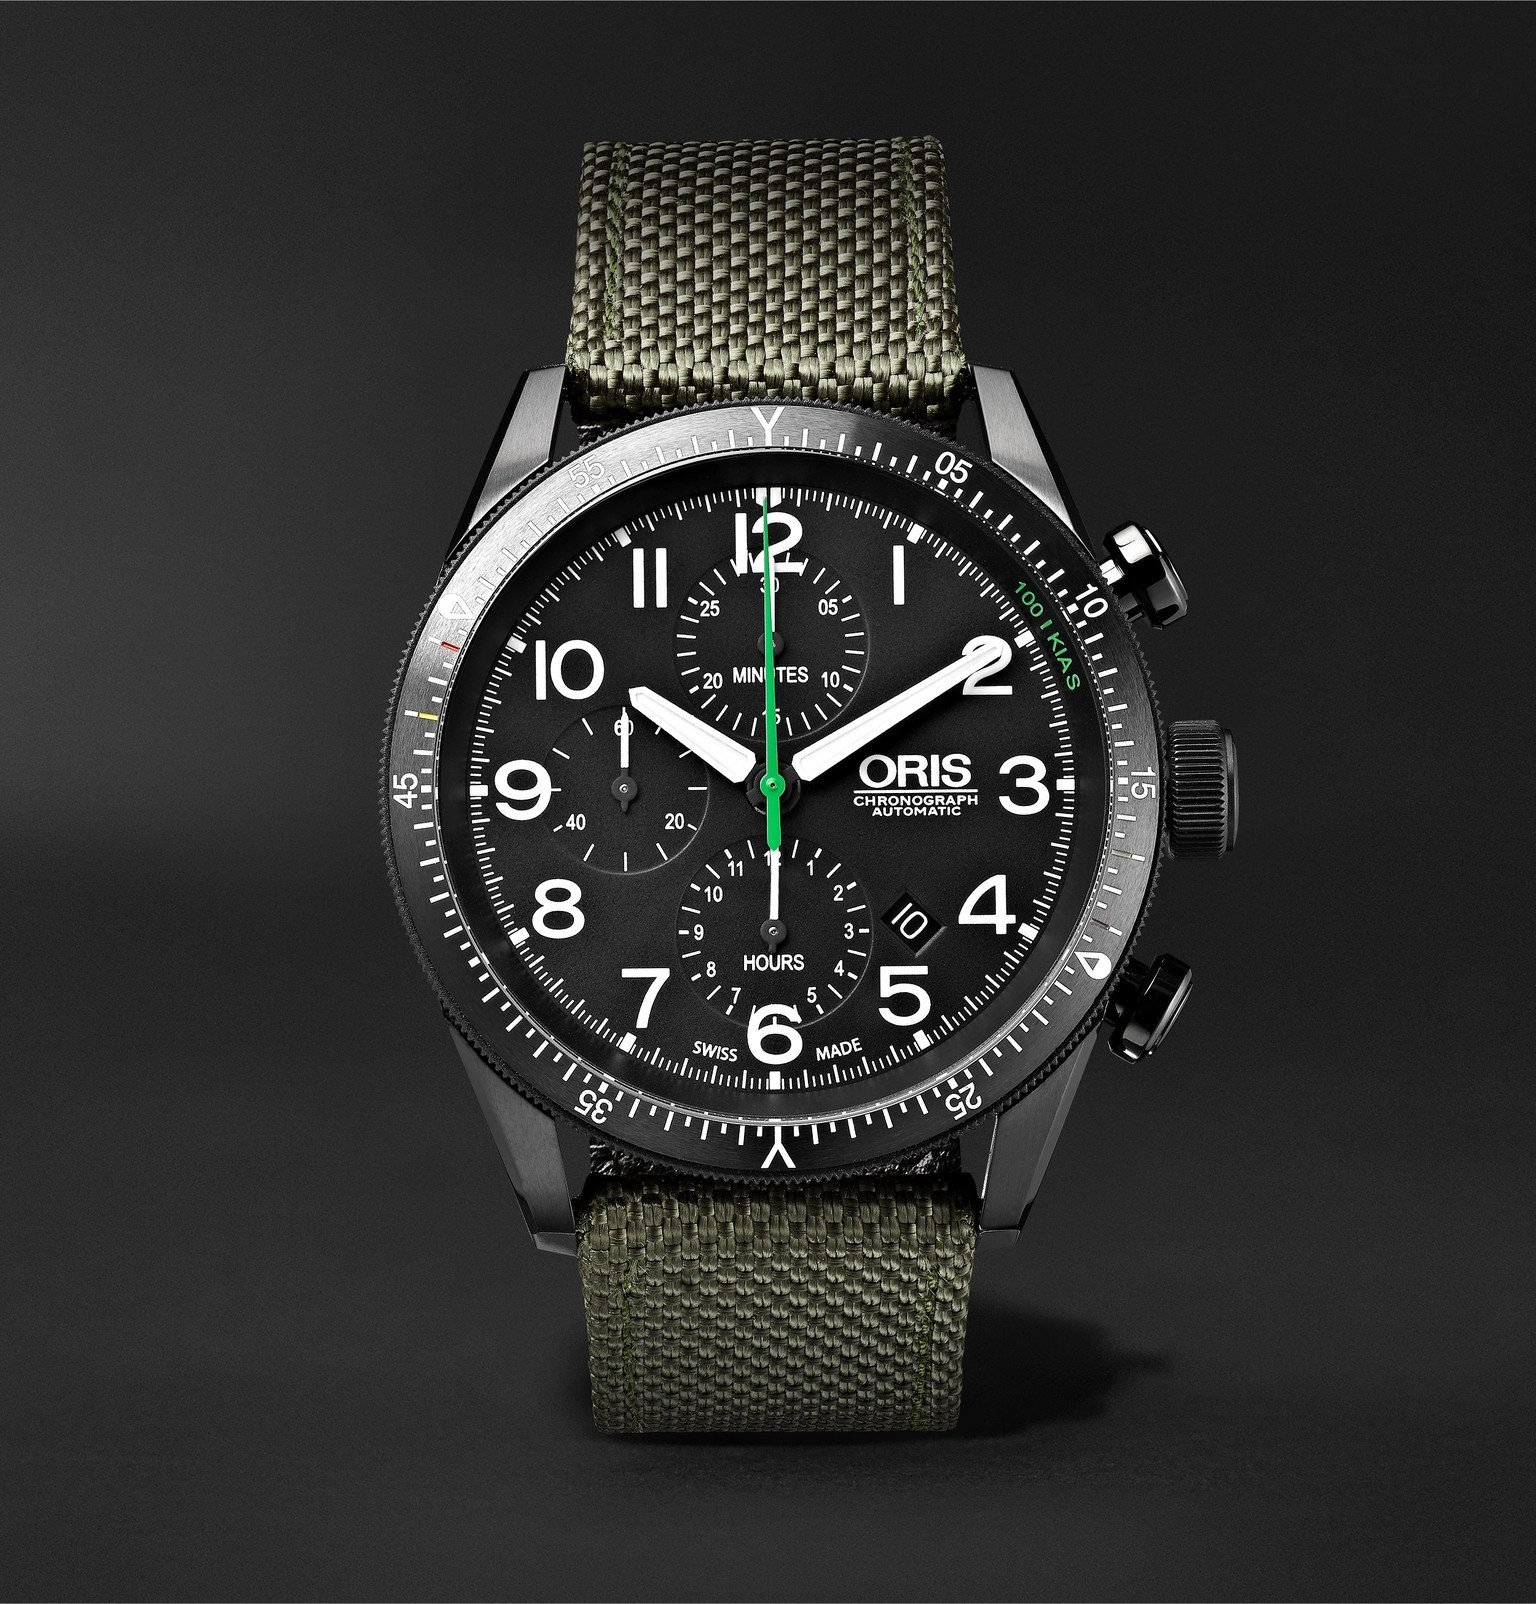 Photo: Oris - Paradropper Limited Edition Automatic Chronograph 44mm Titanium and Canvas Watch, Ref. No. 01 774 7661 7734 - Black